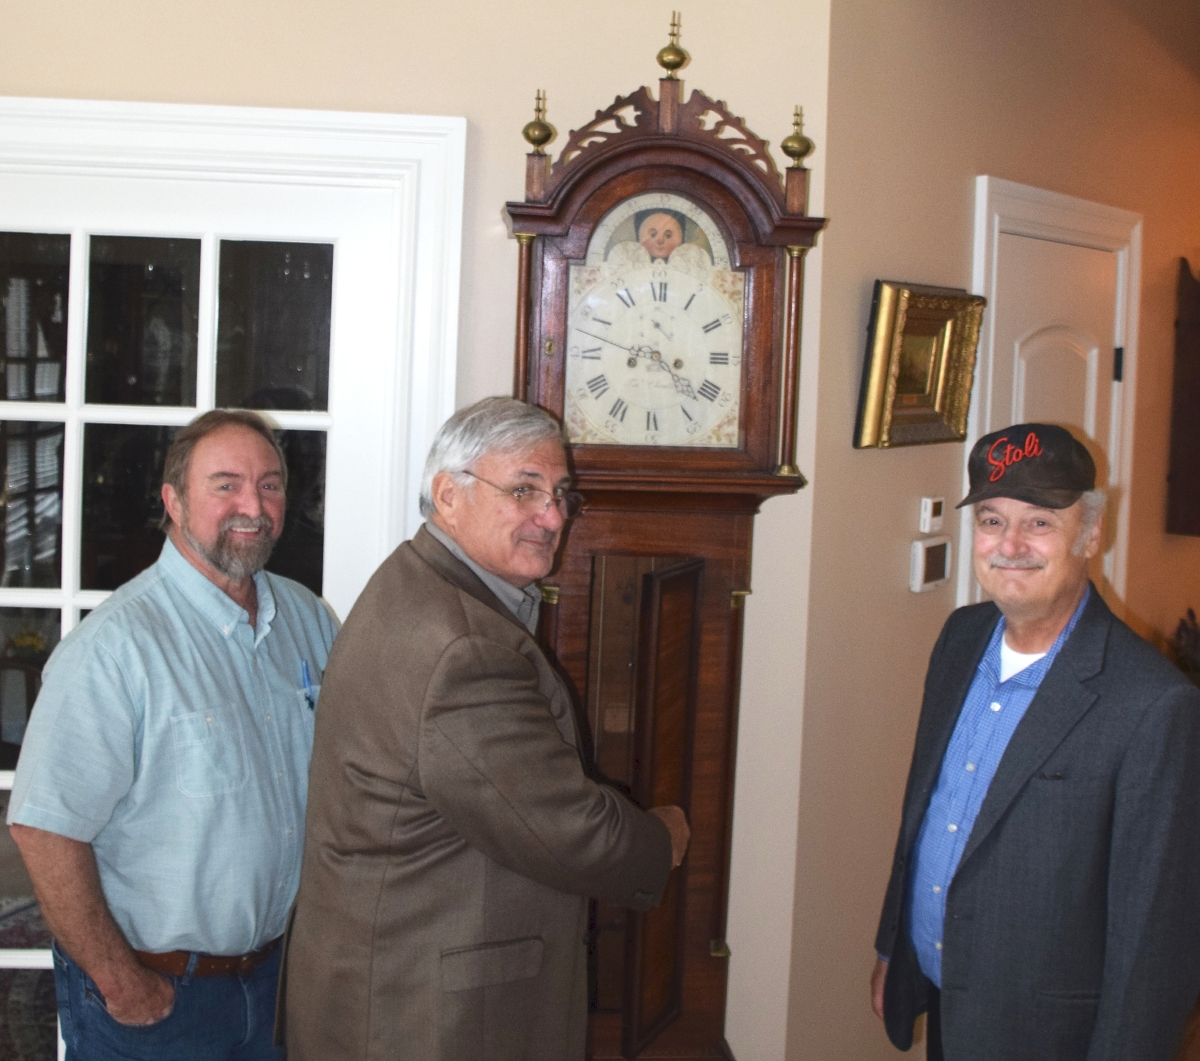 From left, Gary Yeaton, Mike Reopel and Kenneth Labnon.